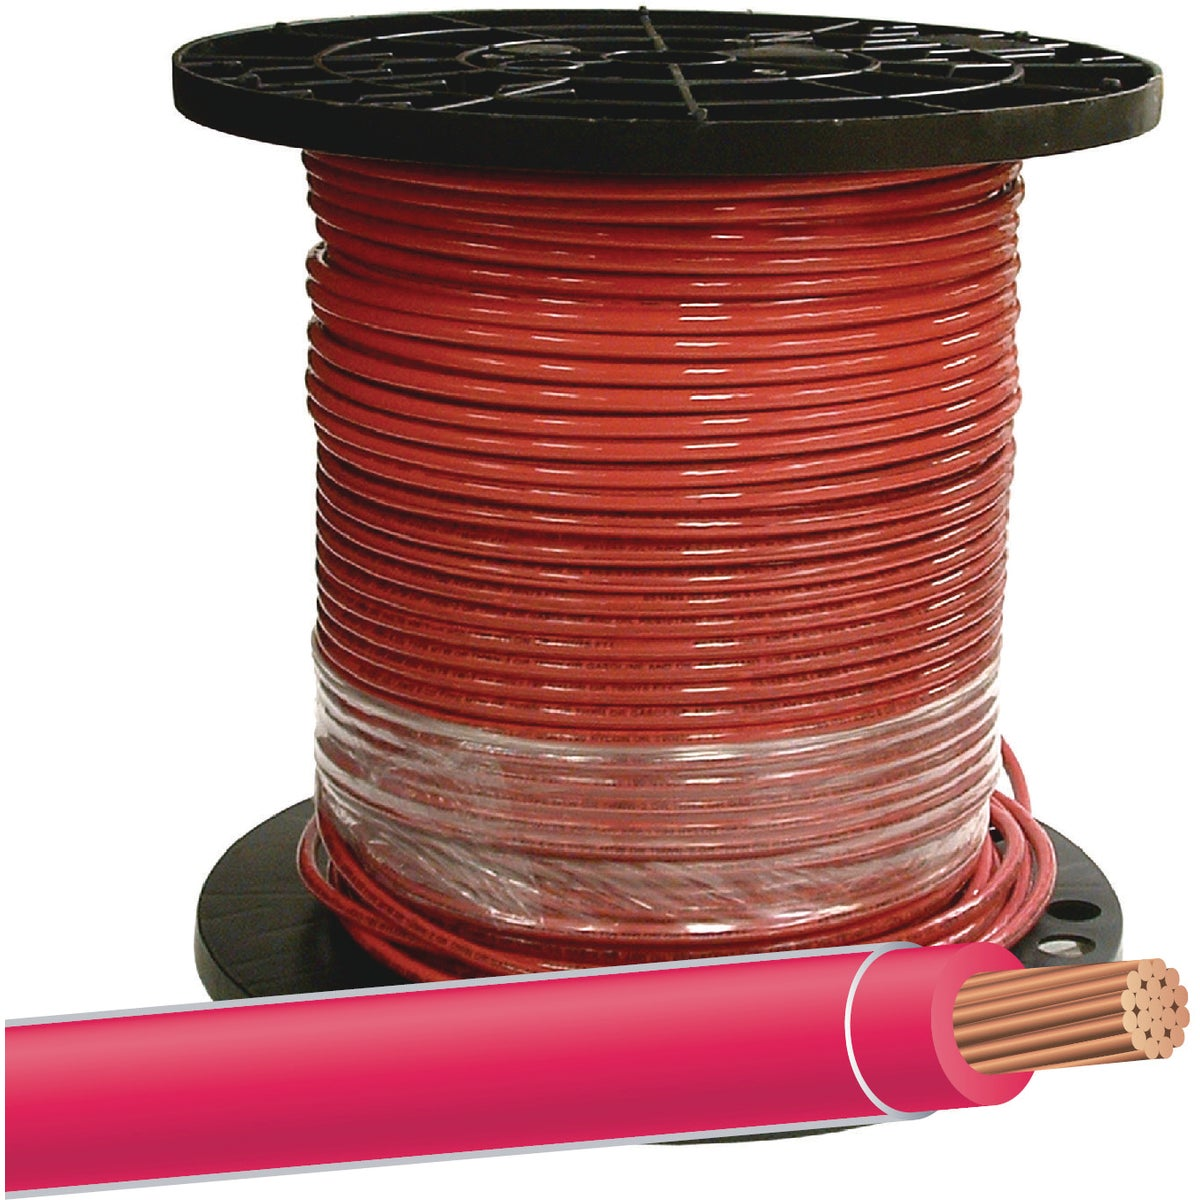 500' 12STR RED THHN WIRE